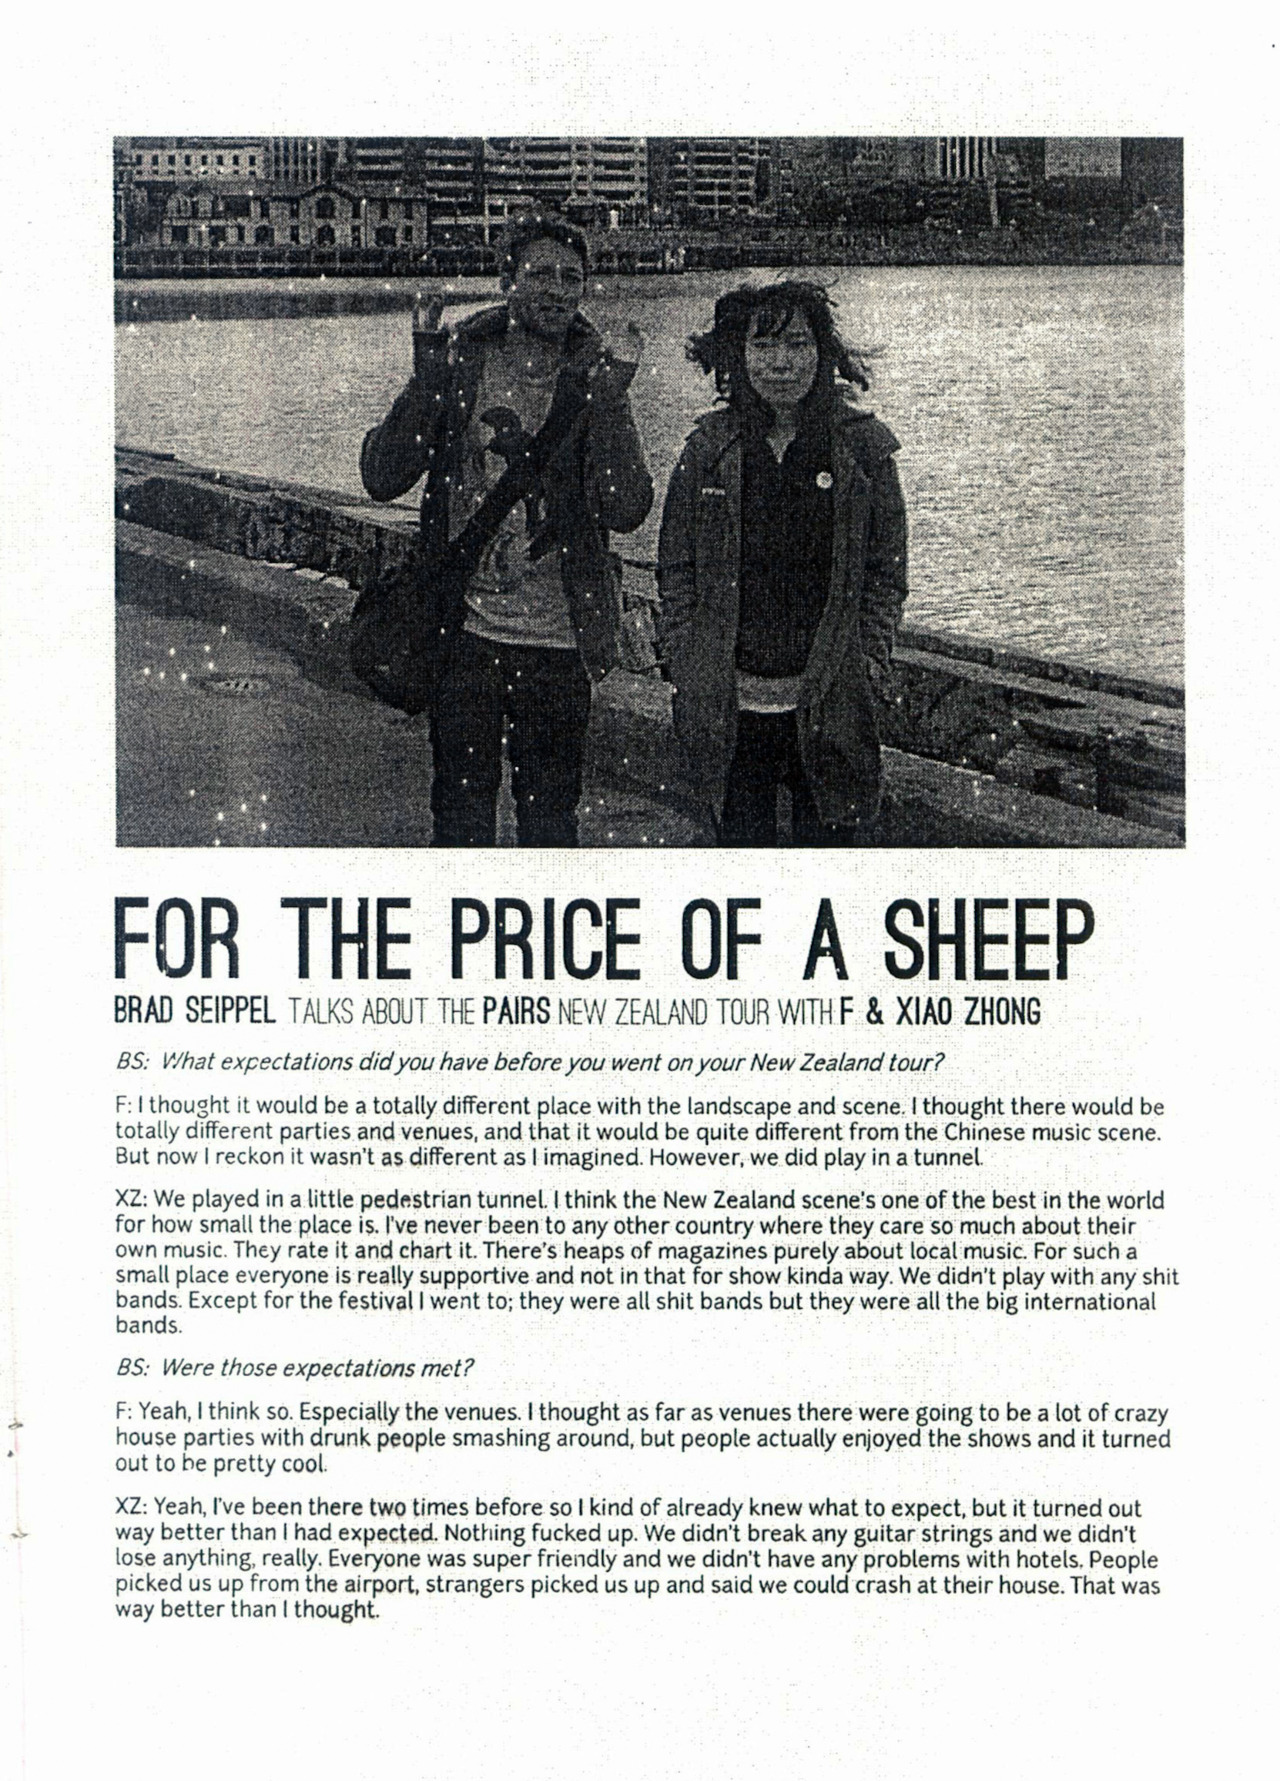 [[MORE]]   interview with Shanghai's PAIRS from issue #3 of the JINGWEIR zine, scans of issues 1-3 are all available for free download in PDF http://jingweir.tumblr.com/zine